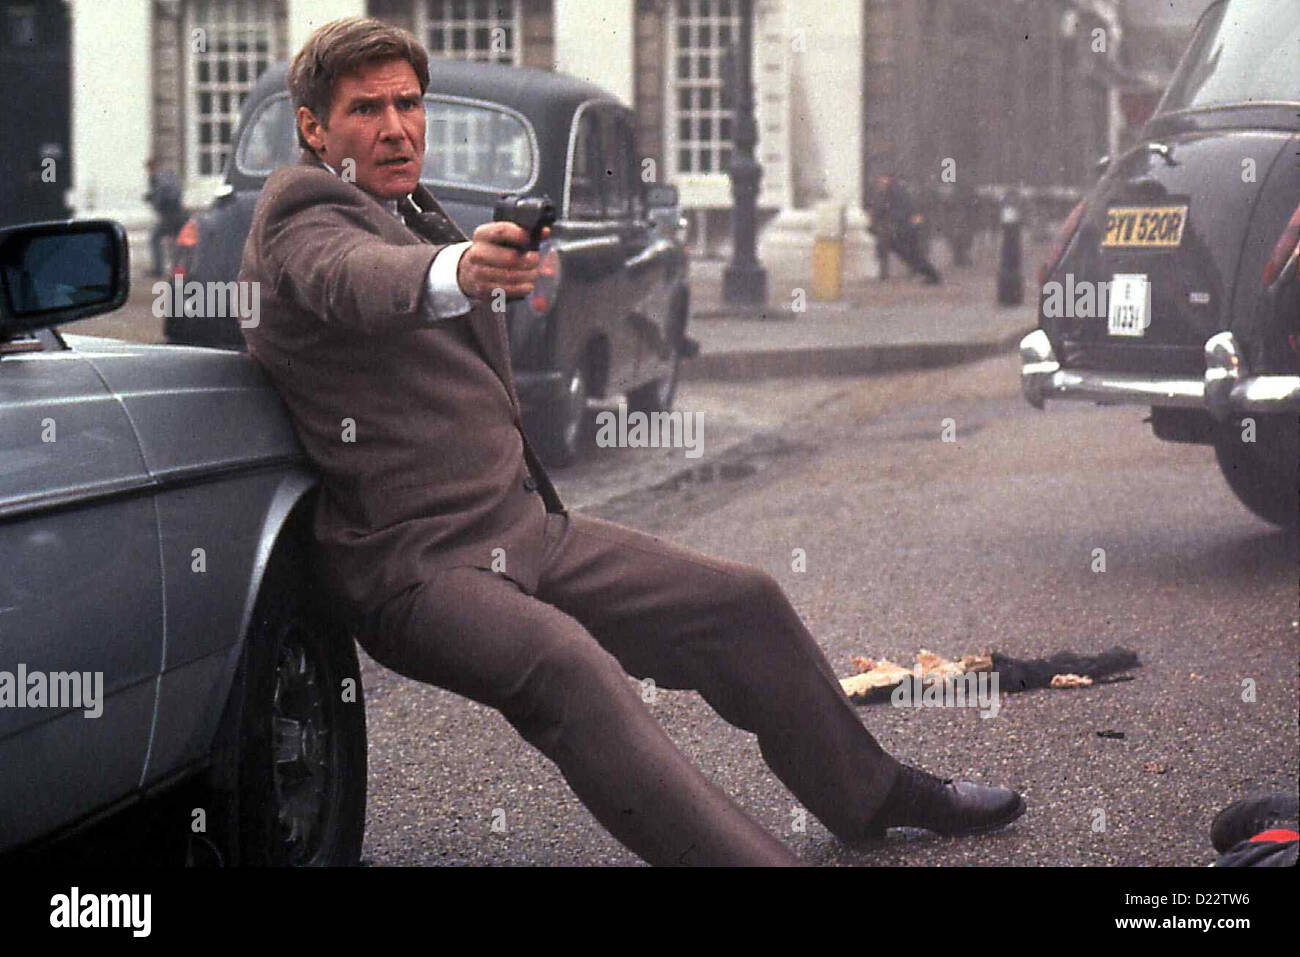 Patriot Games Film Stock Photos & Patriot Games Film Stock Images